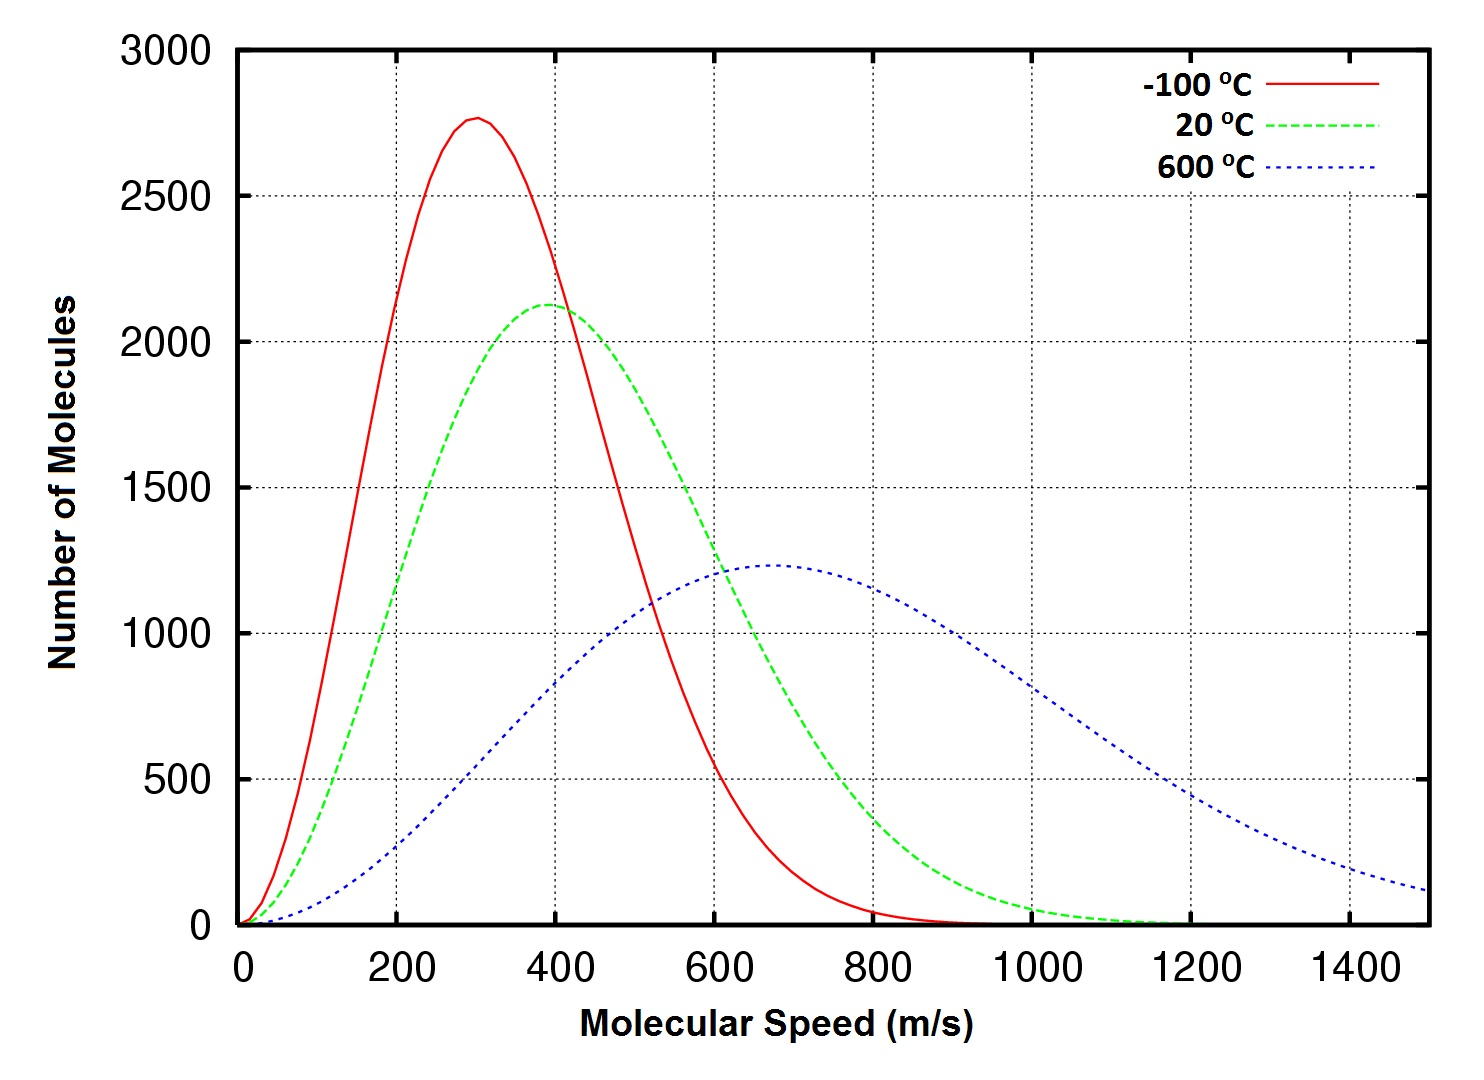 Figure 6.# Distribution of molecular speeds, Oxygen gas at -100, 20 and 600 oC.